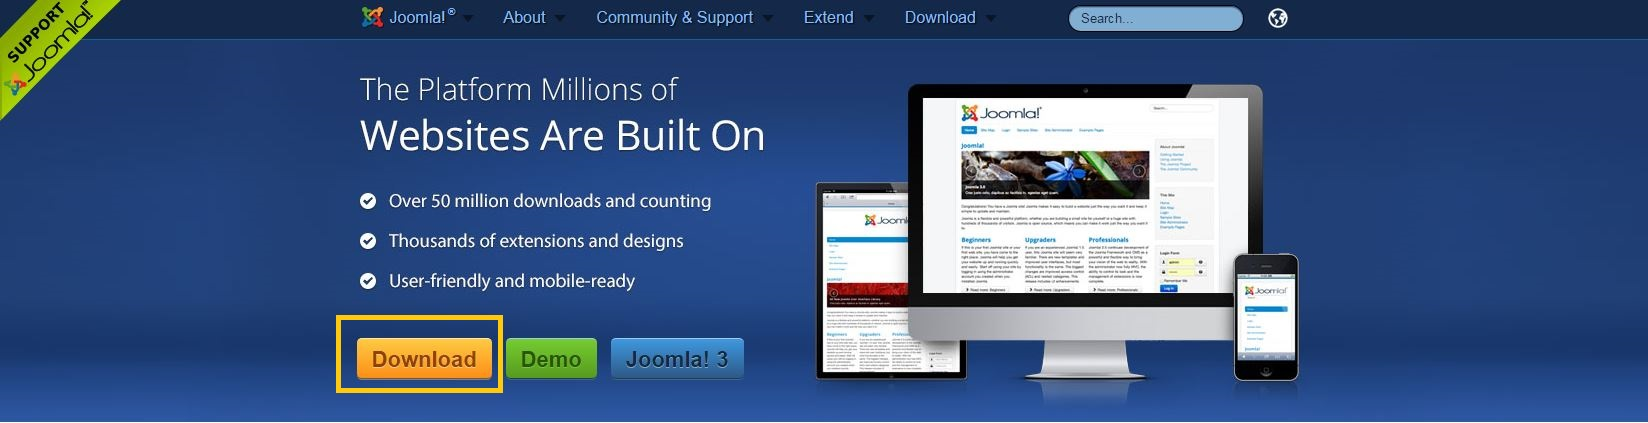 Joomla gratis downloaden